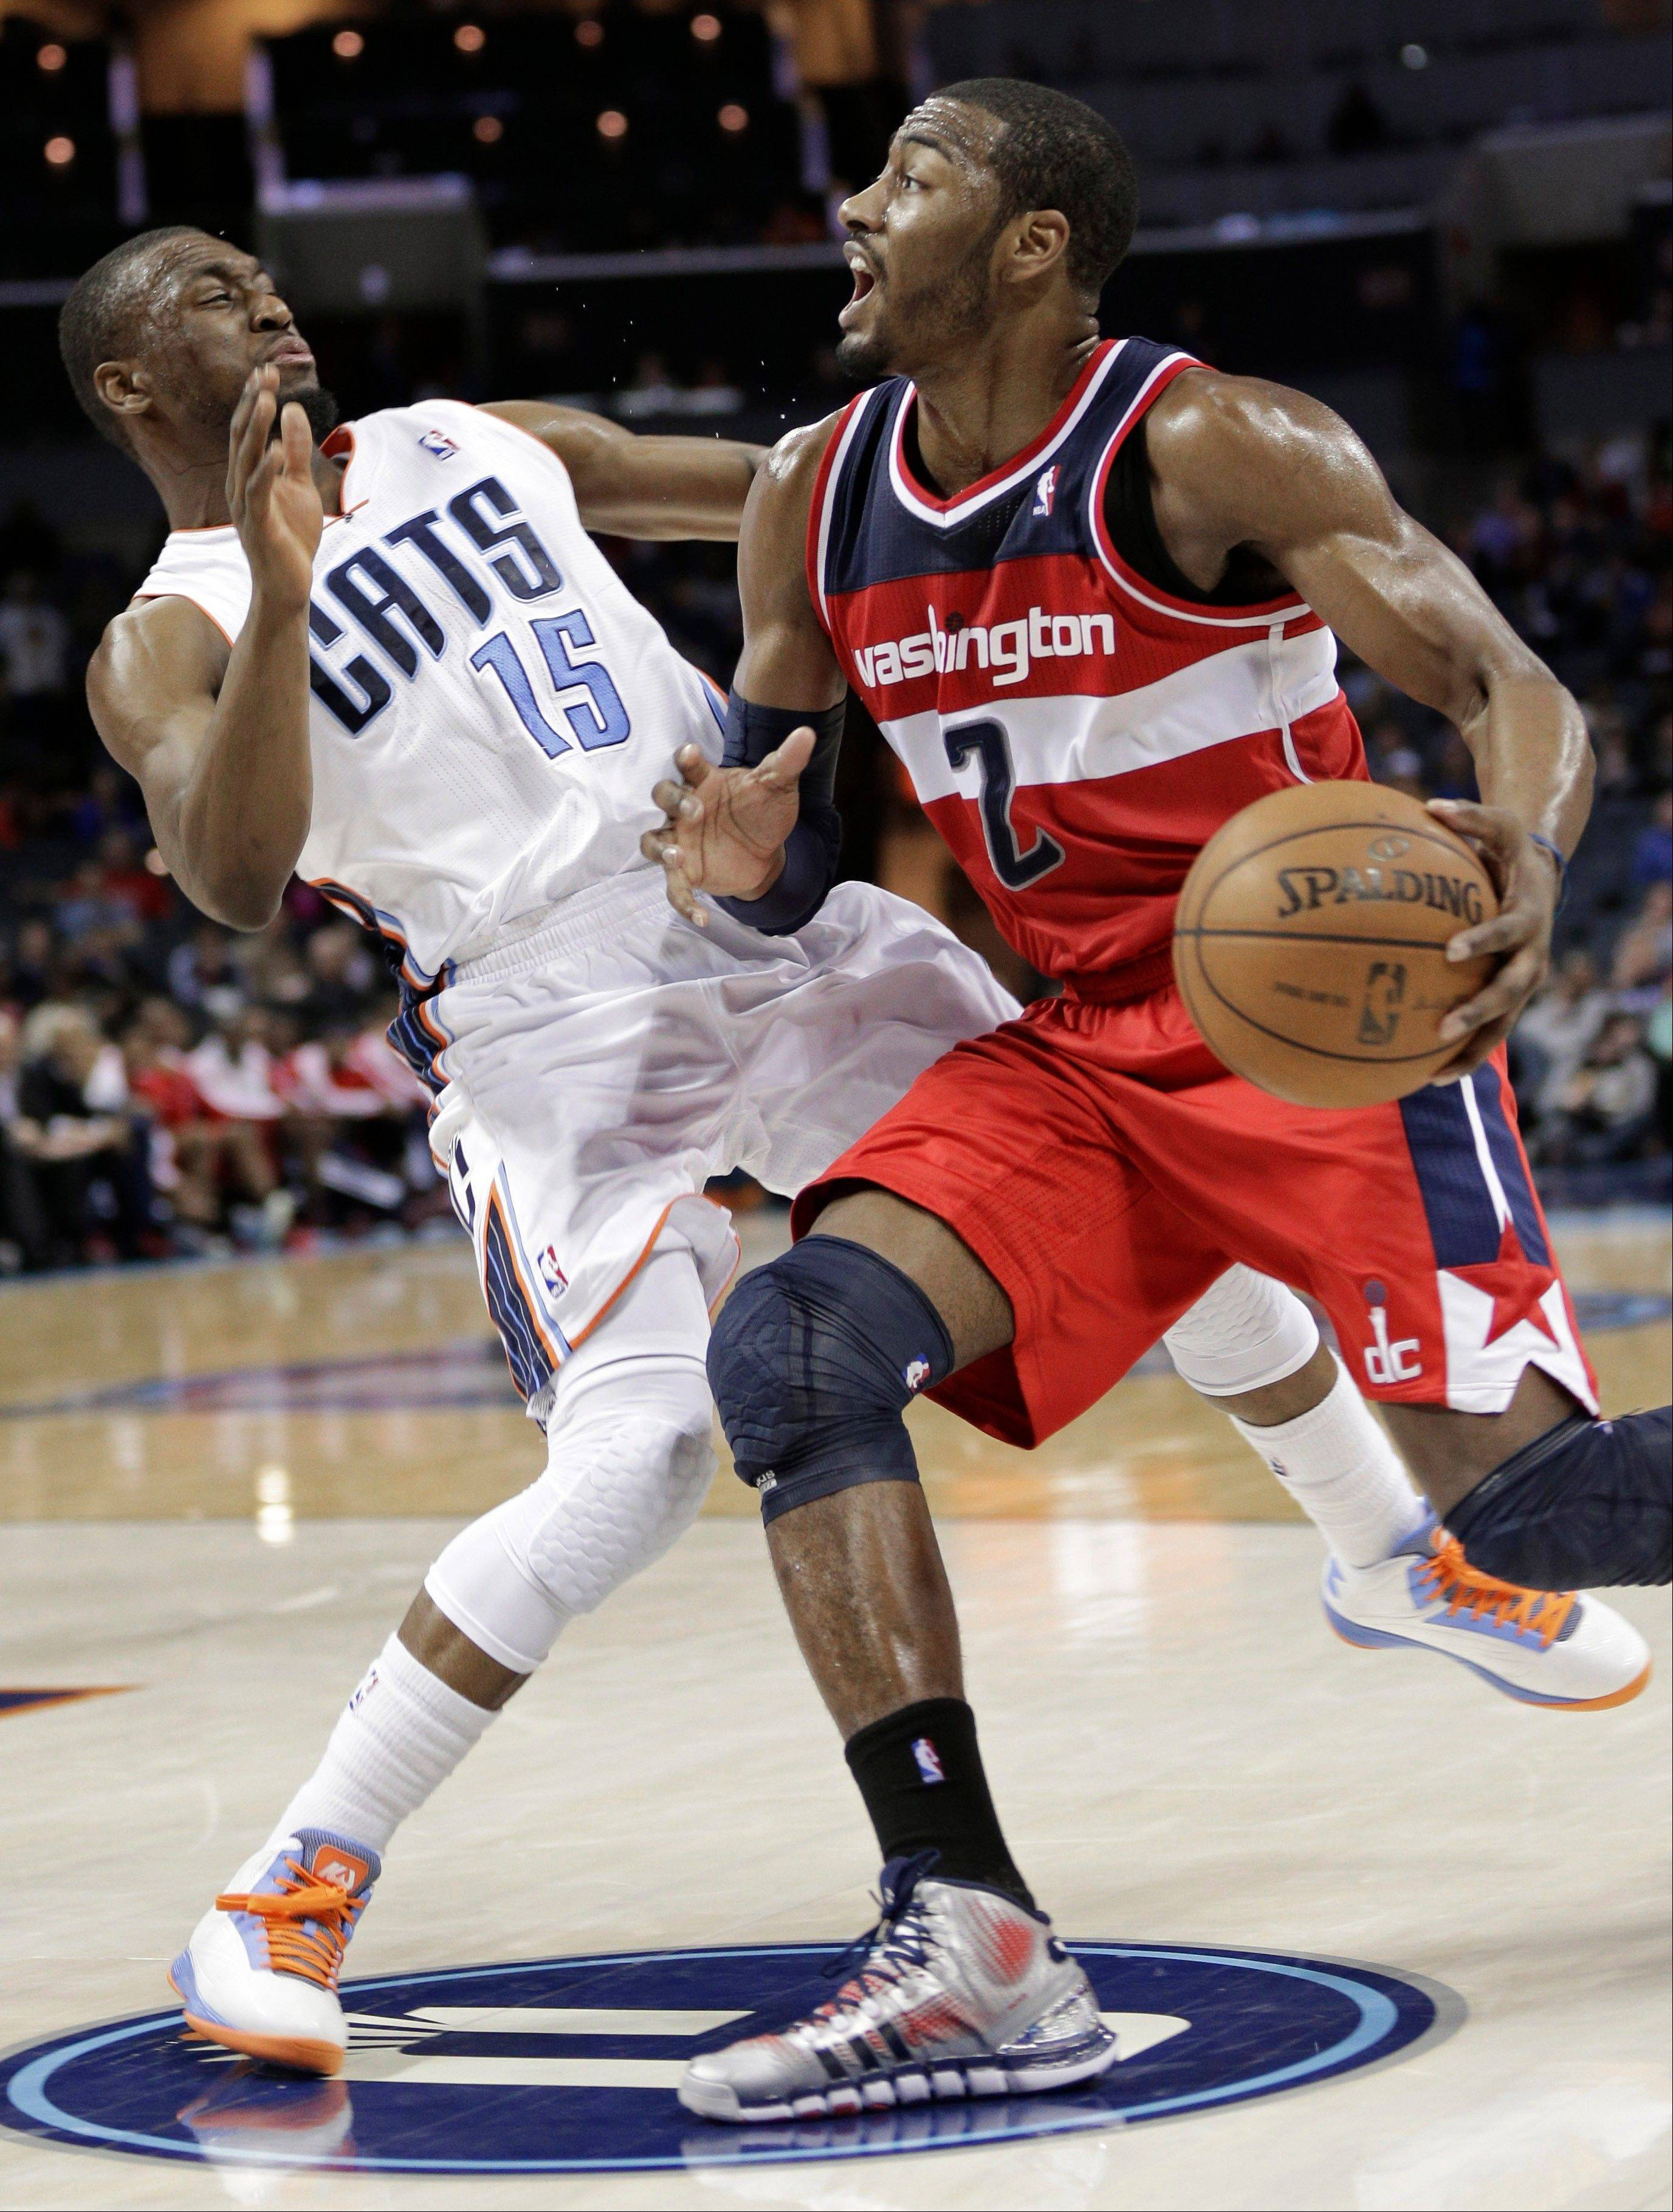 Washington Wizards' John Wall (2) knocks down Charlotte Bobcats' Kemba Walker (15) during the second half of an NBA basketball game in Charlotte, N.C., Monday, March 18, 2013. Wall was called for a charging foul on the play. The Bobcats won 119-114.